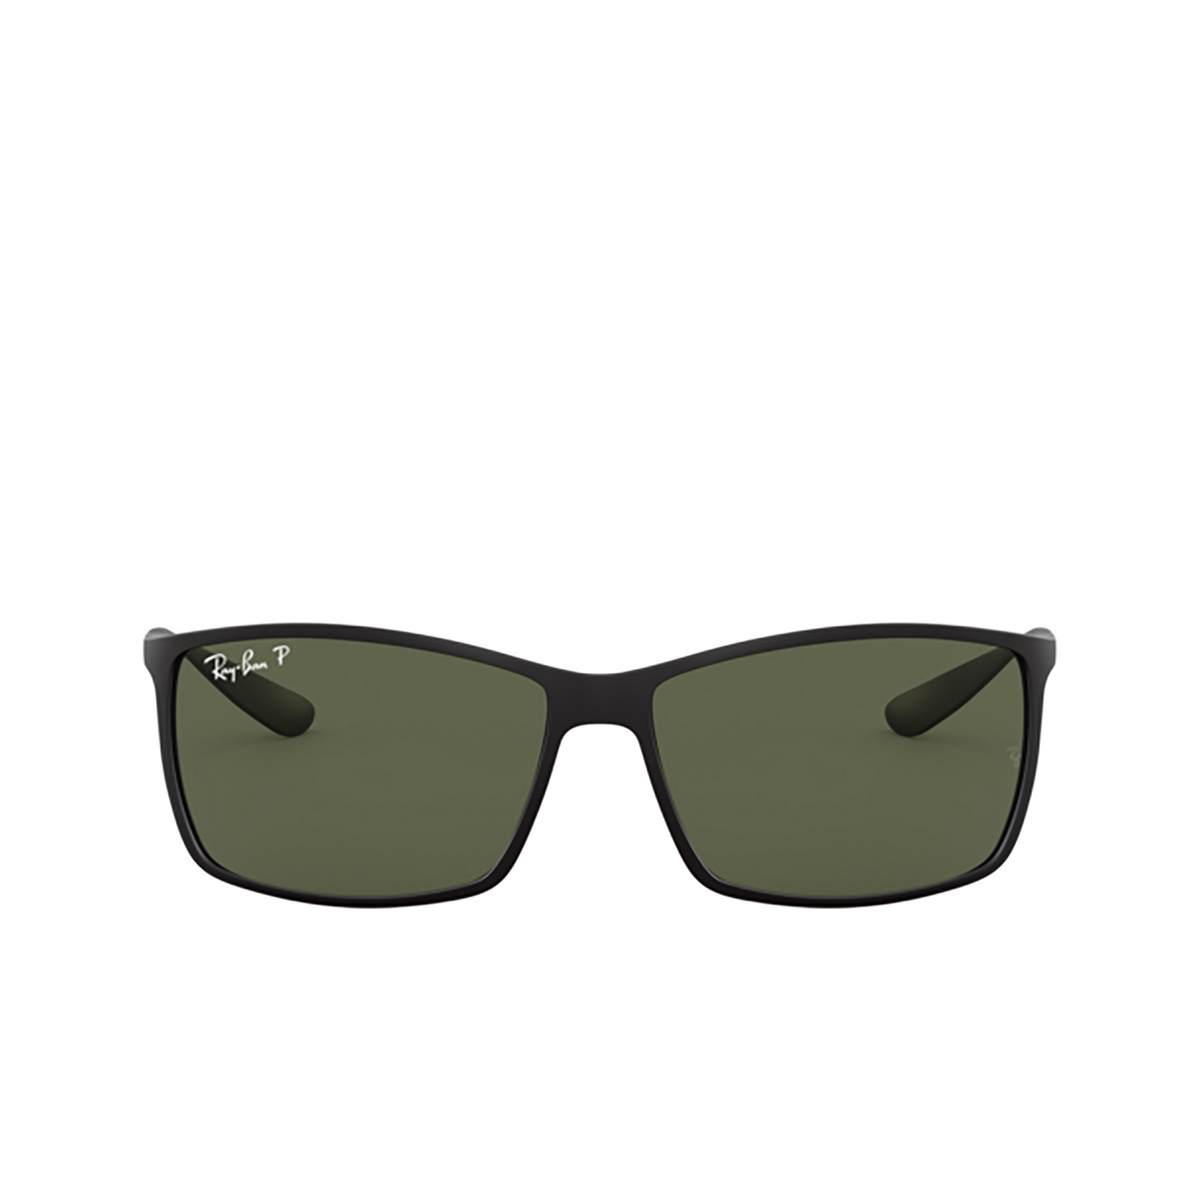 Ray-Ban® Square Sunglasses: Liteforce RB4179 color Matte Black 601S9A - 1/3.